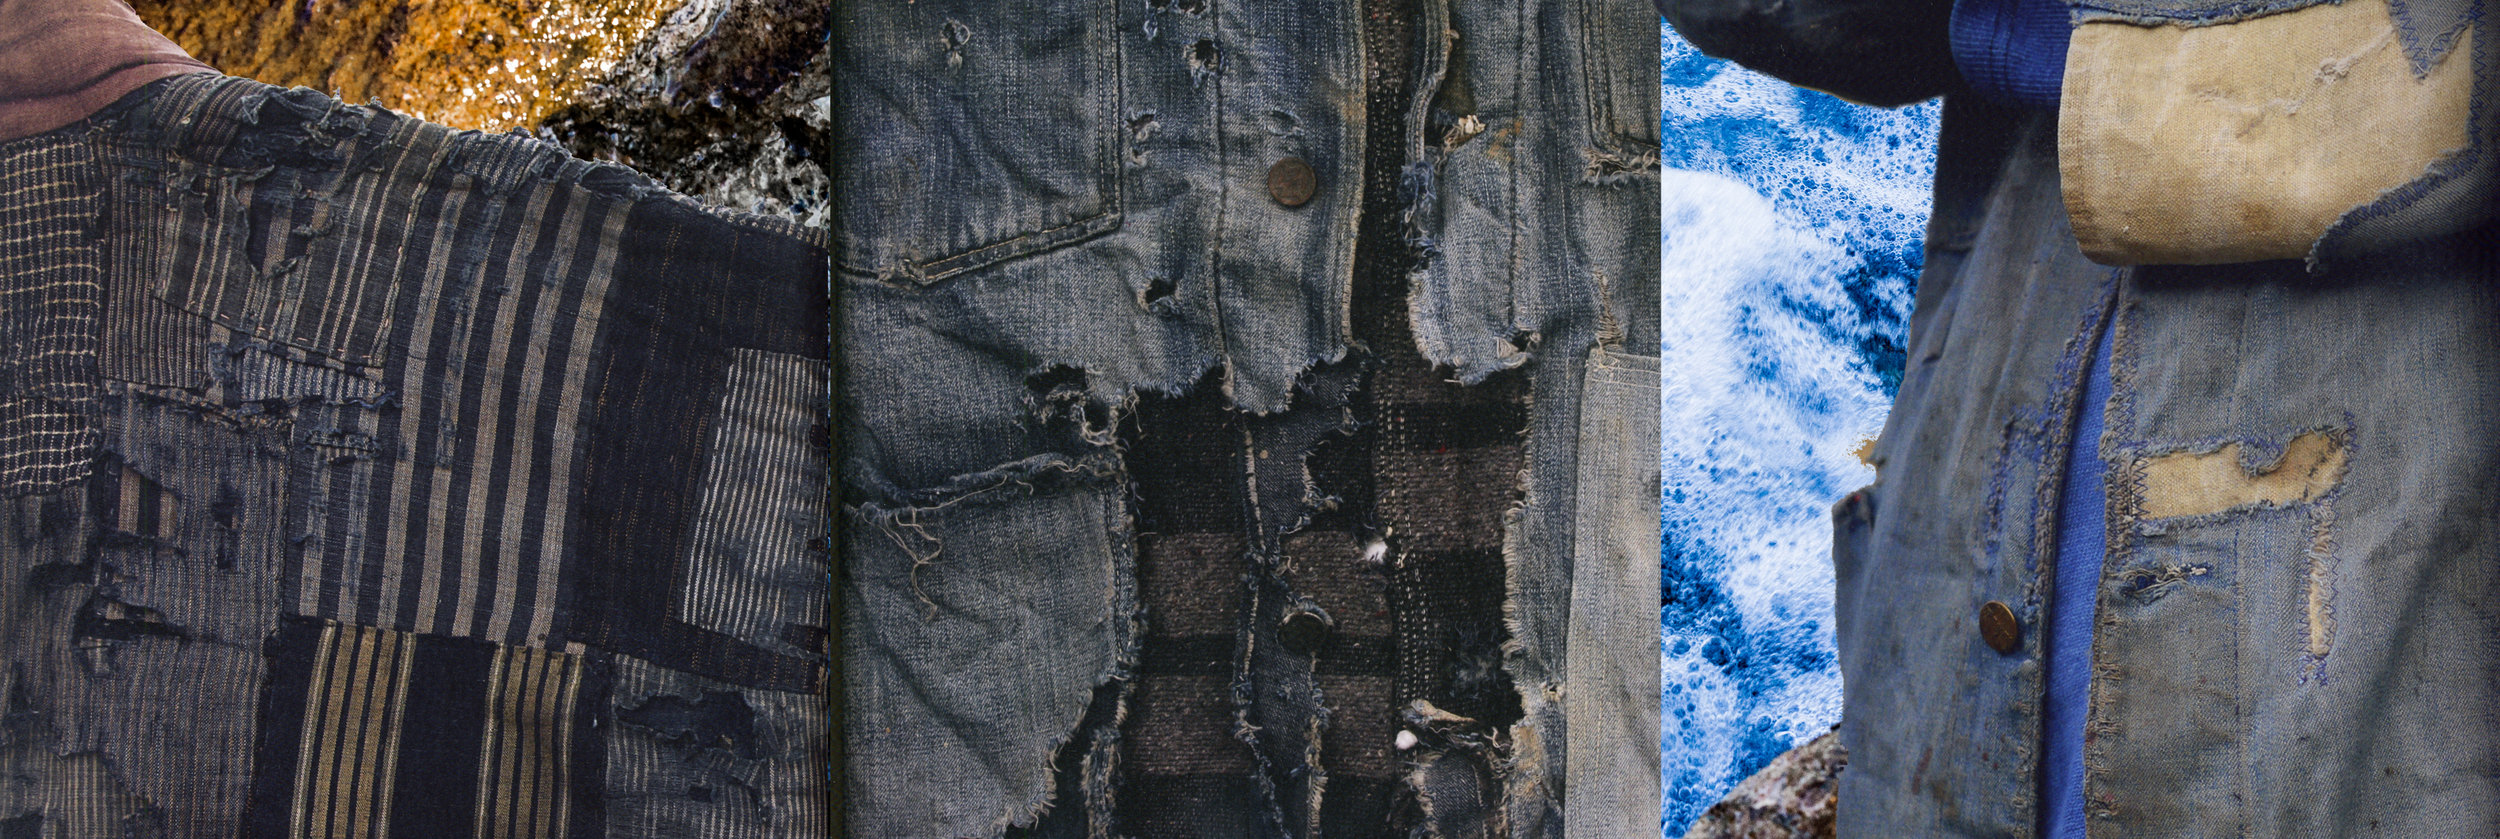 "Background image by Ela Stipicic | Images from left to right: Japanese Farmer Kimono (1980), depression era damage and right image from the book ""Worn (2015)"" by Lockett and Gunn"